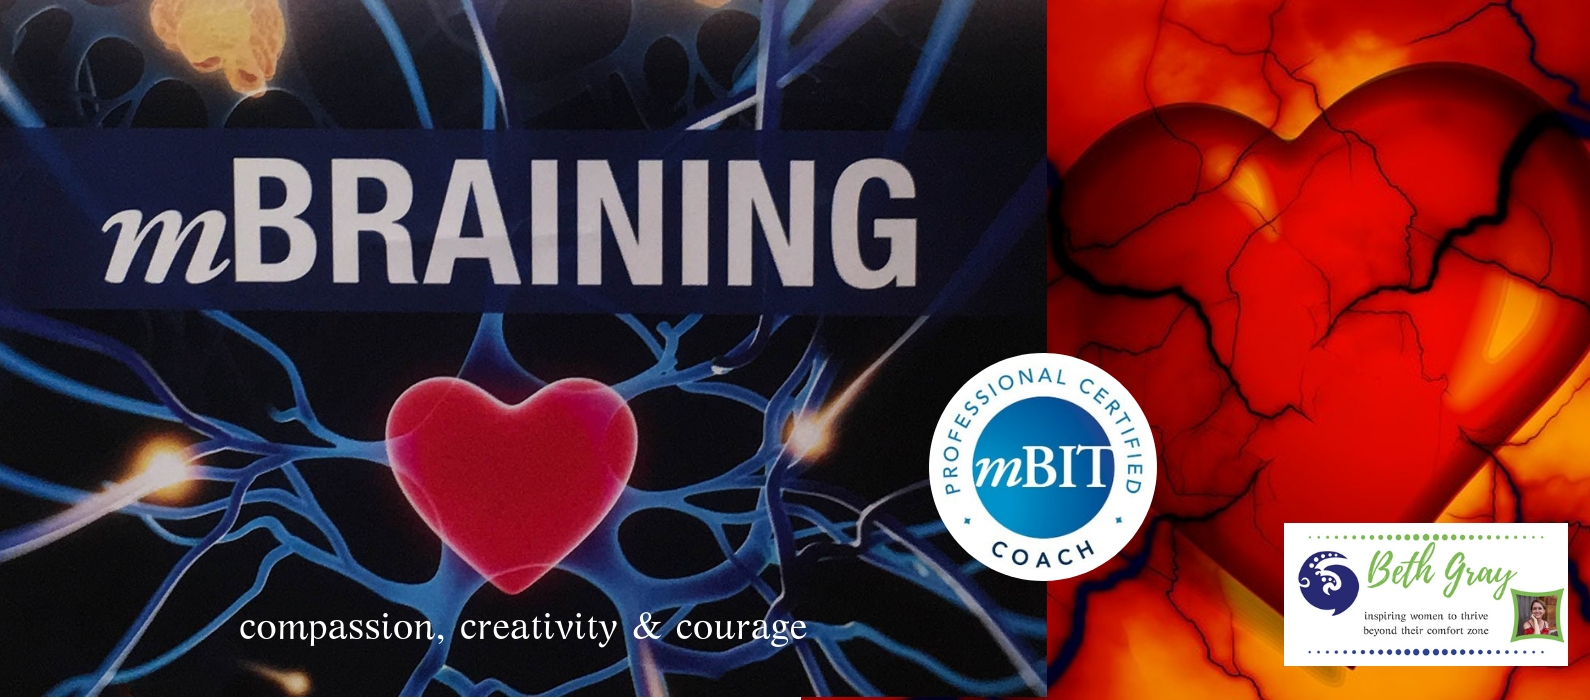 mbraining, mBIT, coaching, coach, life coach, compassion, desire, hopes, dreams, creativity,brainstorming, obstacles, realistic, courage, overcoming, overcame, overcome,